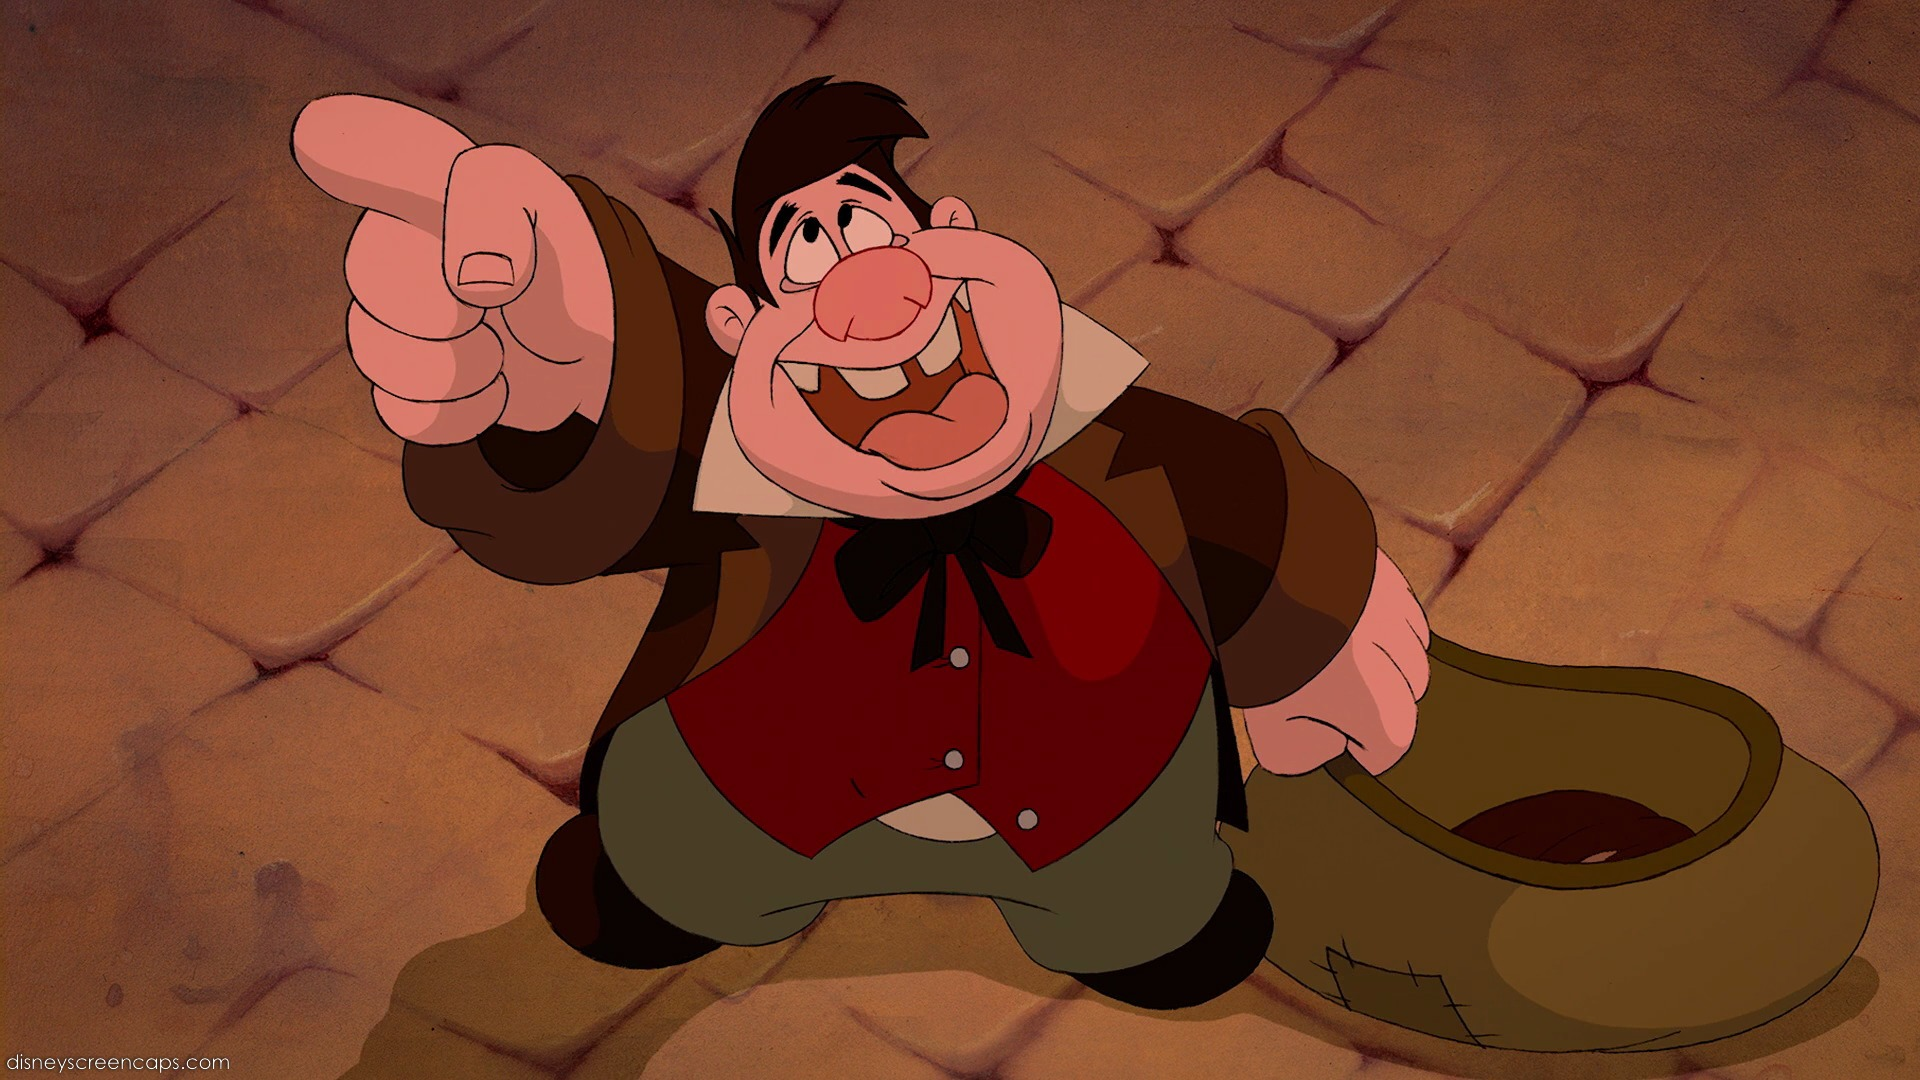 Le Fou from Beauty and the Beast, worthy of a Disney spinoff